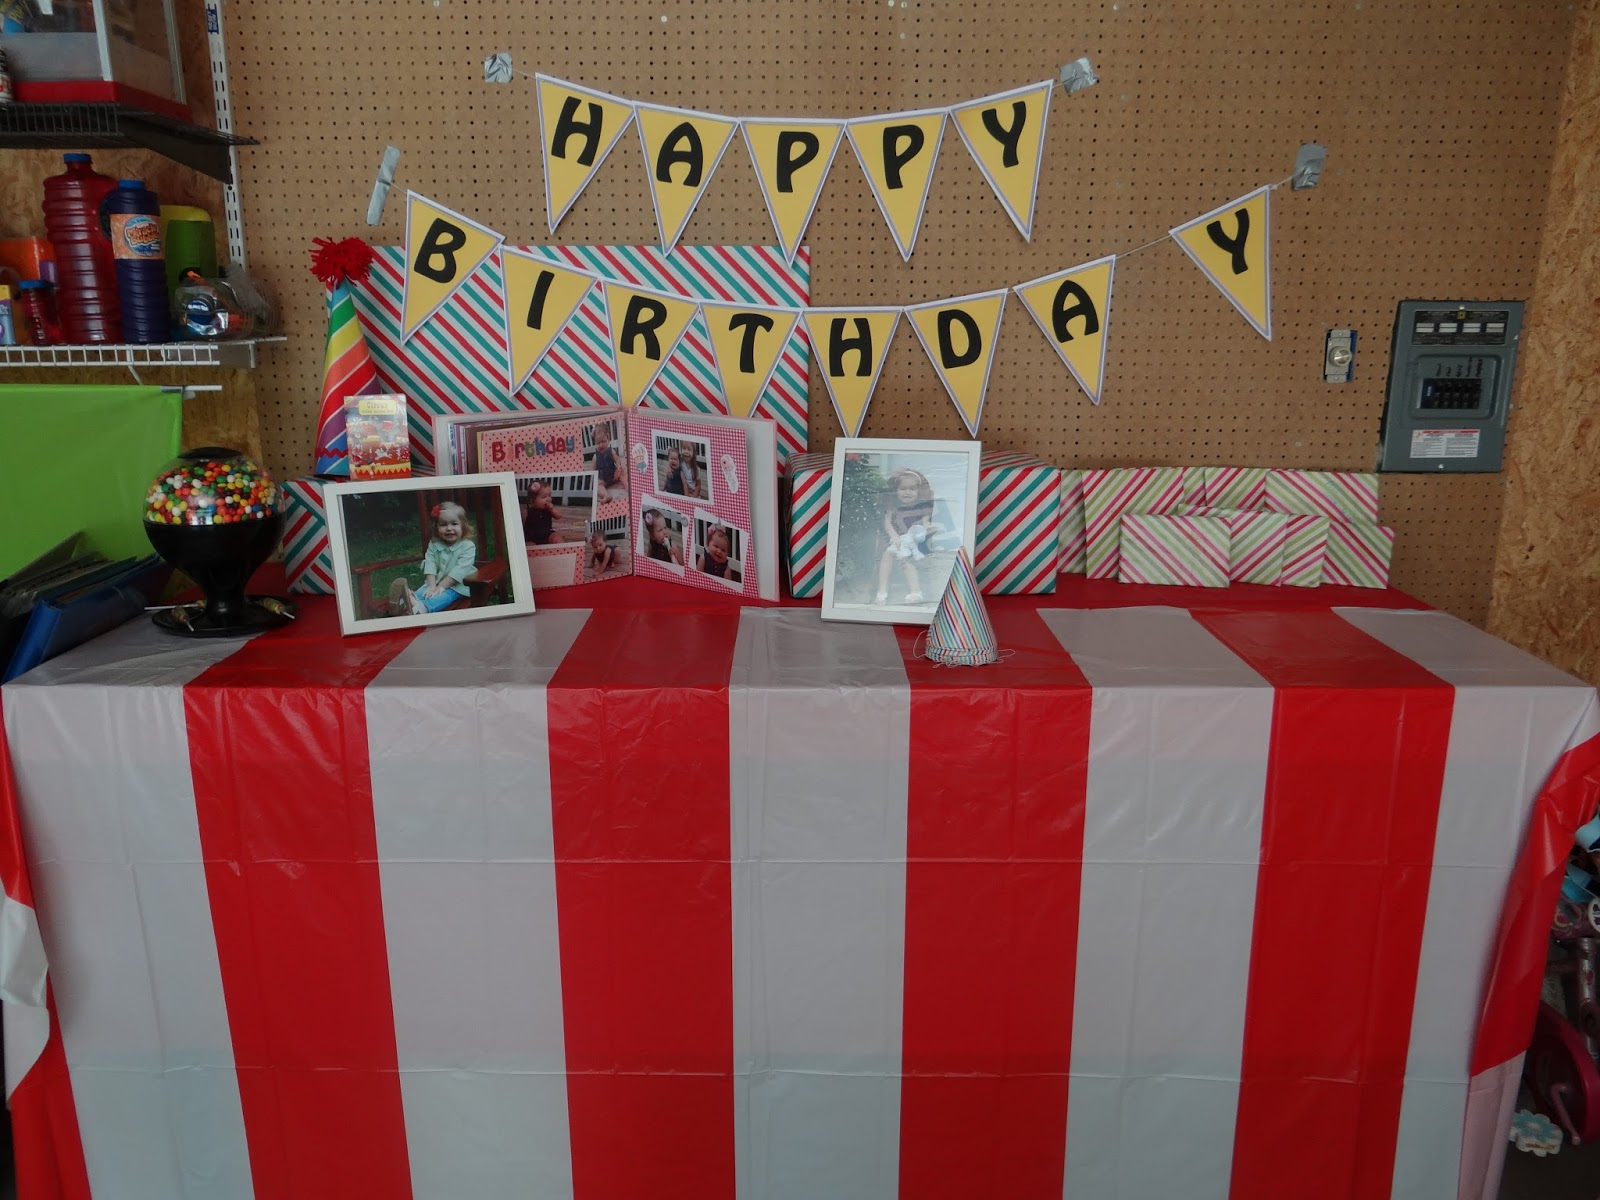 Busy hands blessed hearts carnival 2 year old birthday party for Room decorating ideas yahoo answers